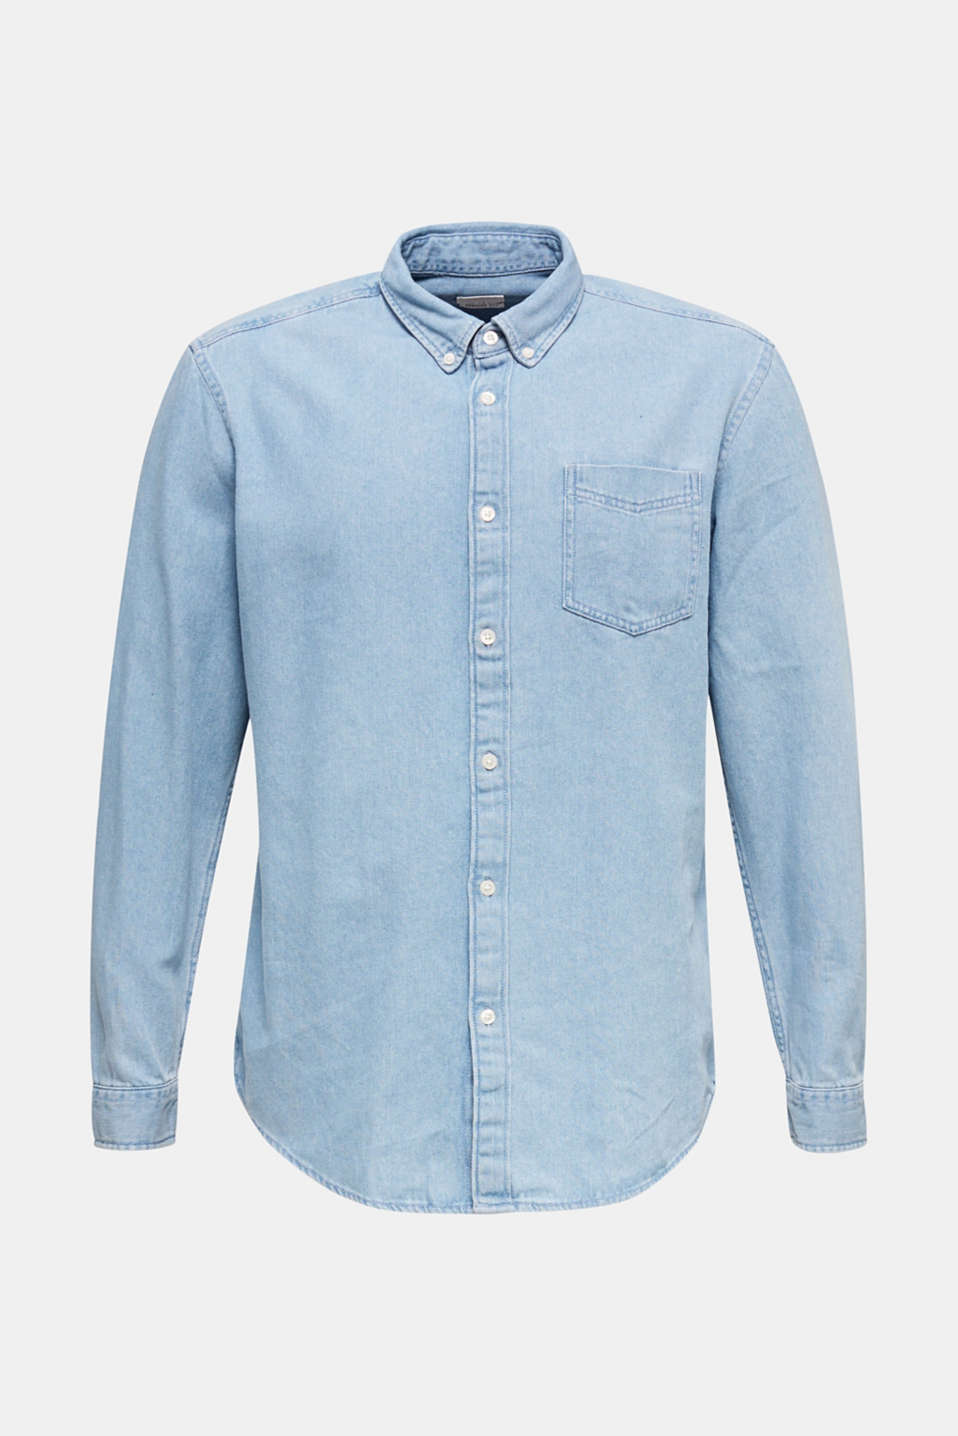 Denim shirt in 100% cotton, BLUE LIGHT WASH, detail image number 5